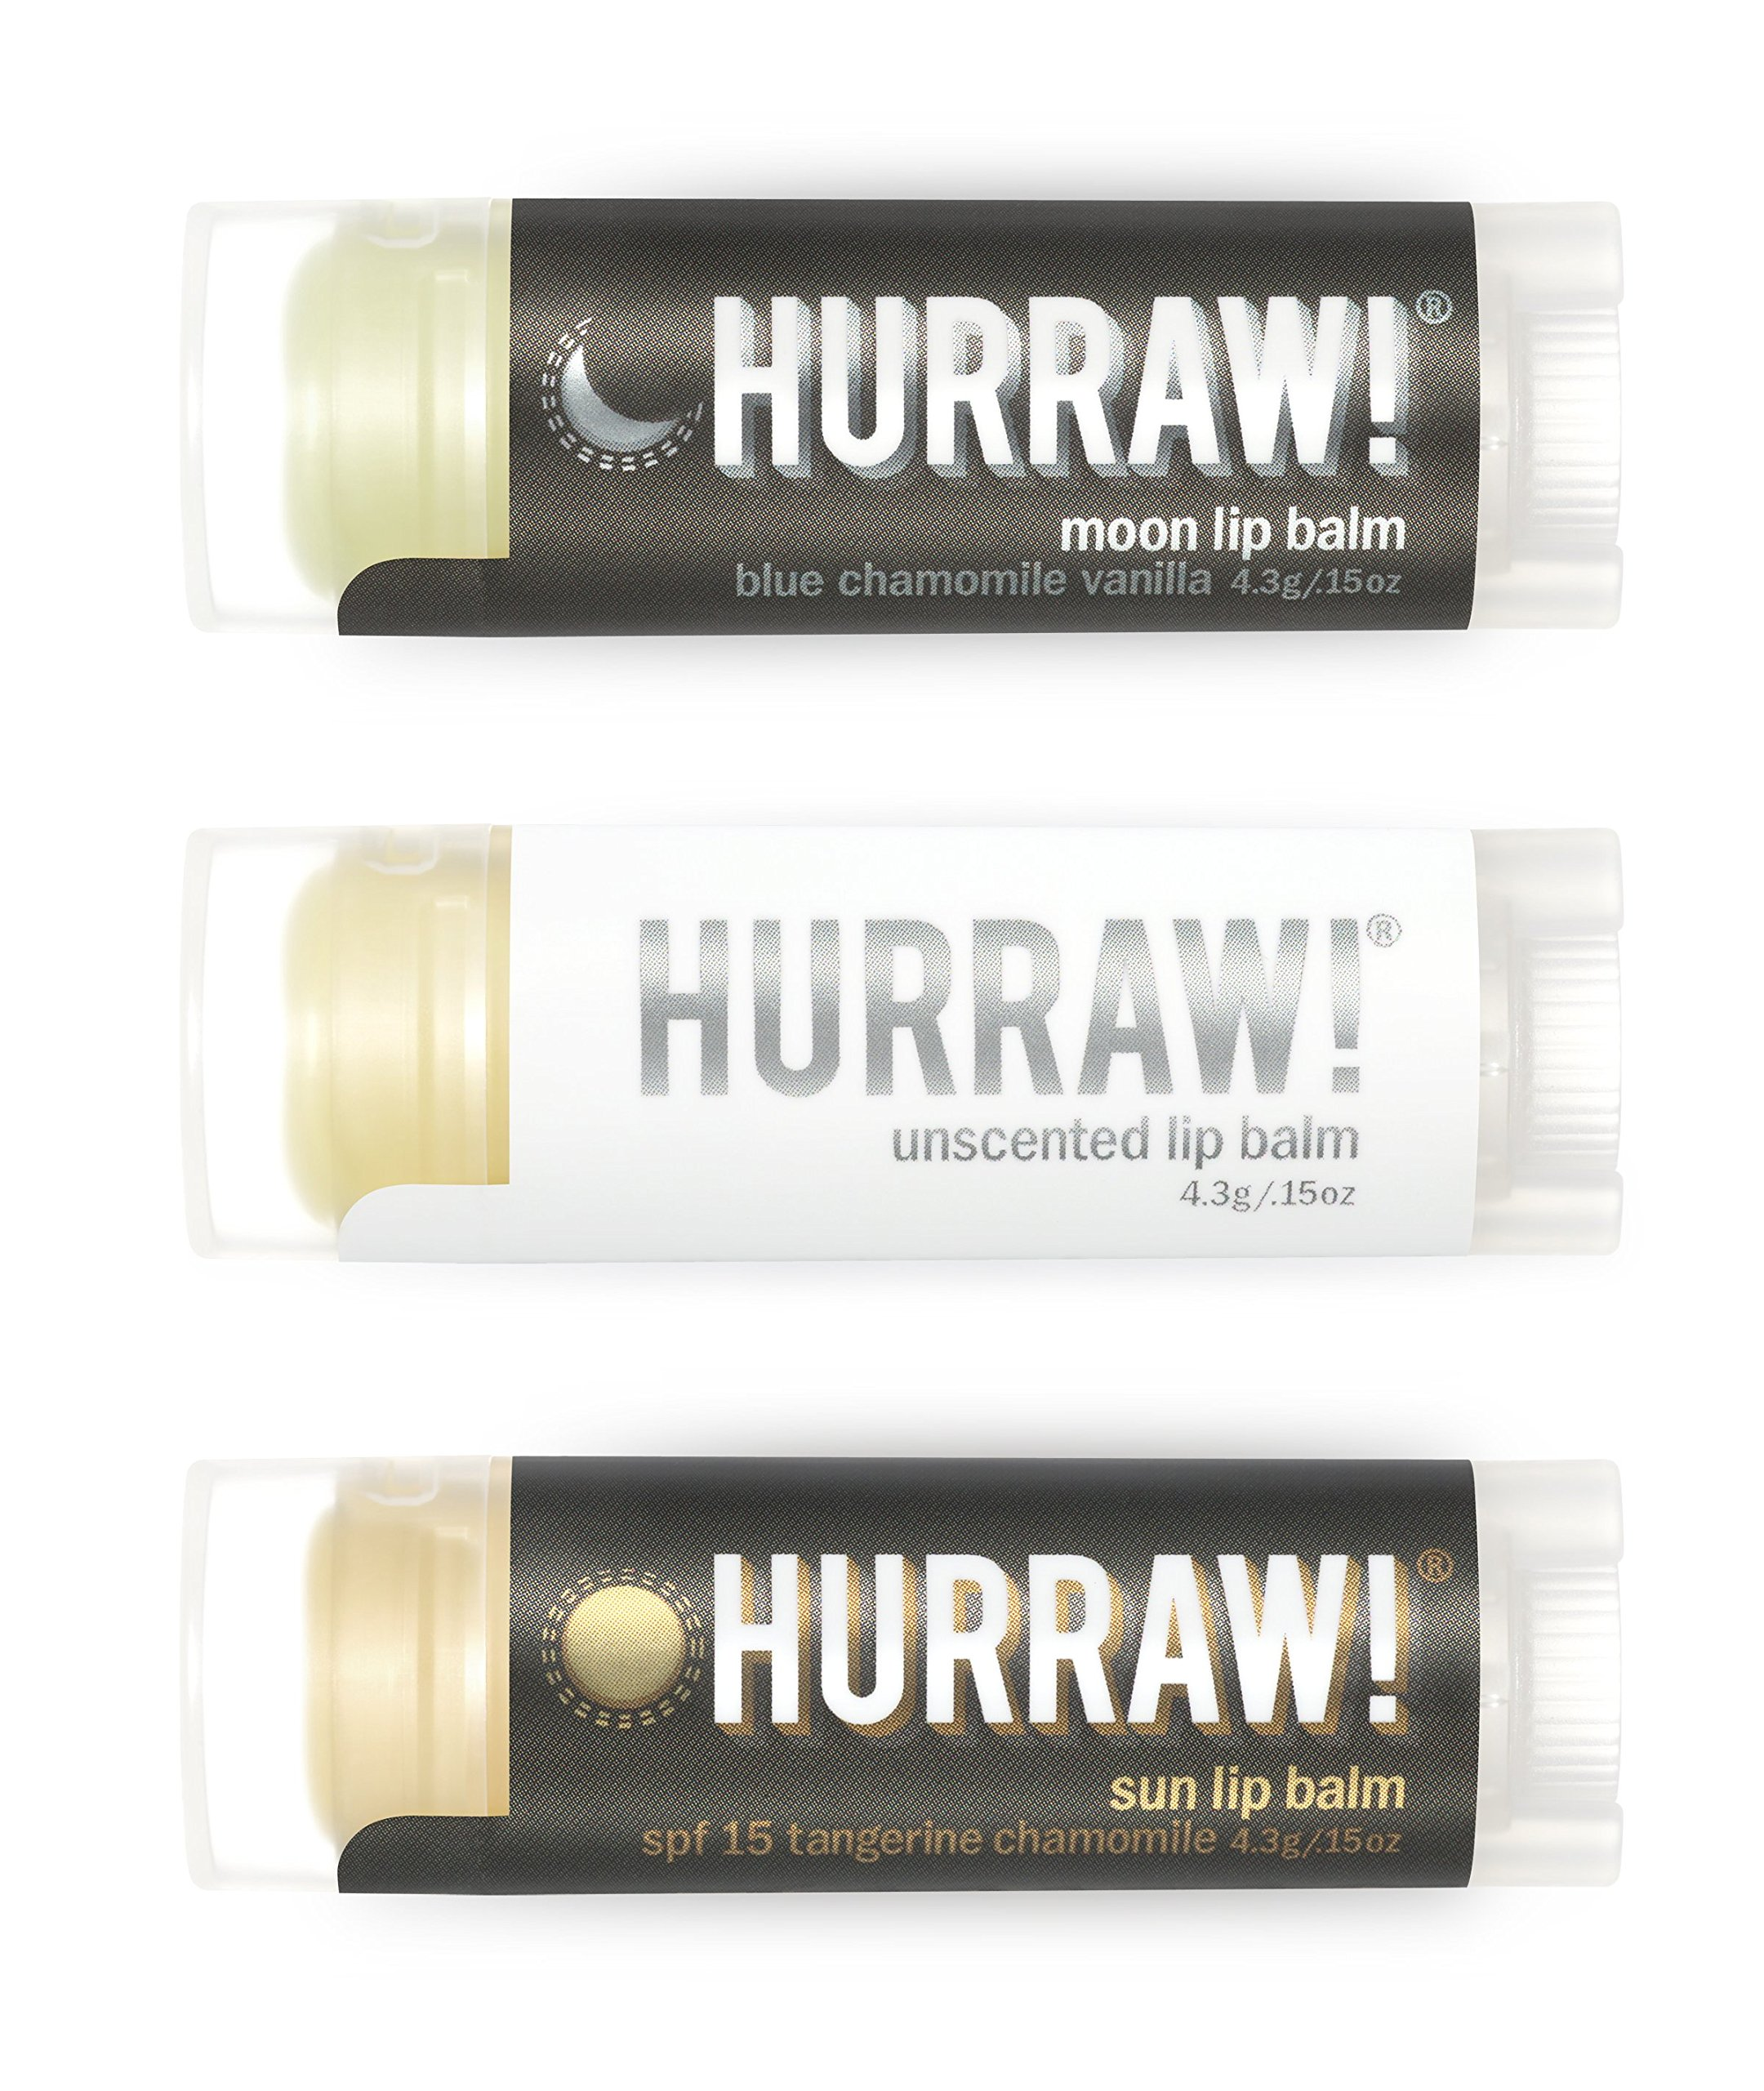 Hurraw Moon Night Treatment, Unscented, Sun Protection SPF 15 Lip Balms, 3 Pack Bundle by Hurraw!